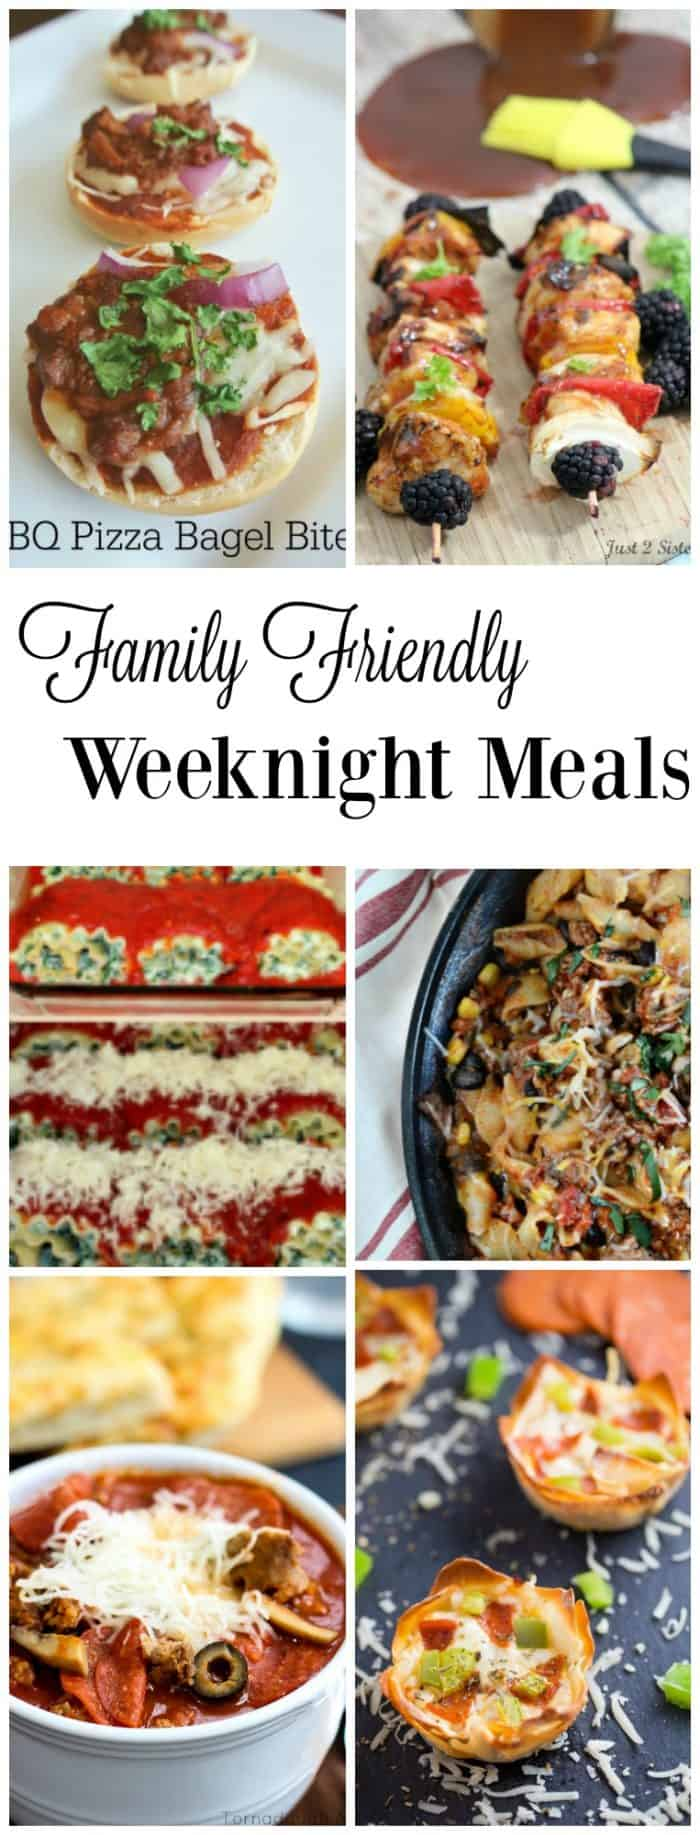 Are you struggling with lighter meals for the warm weather? These family friendly weeknight meals are perfect for the warmer weather.